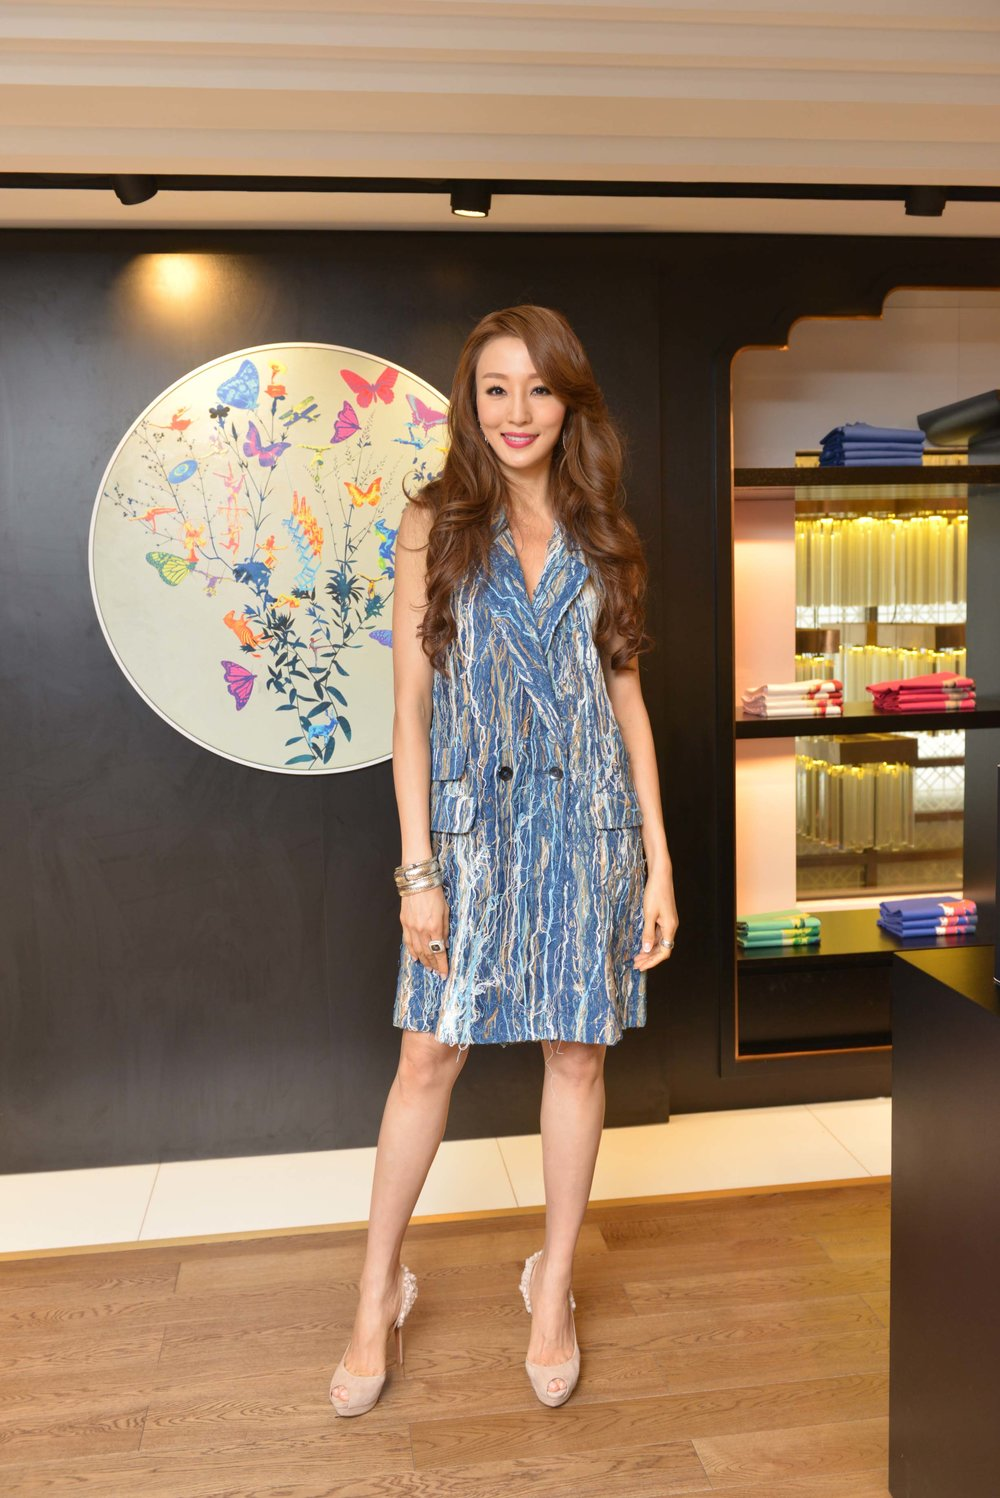 Hong Kong supermodel Eunis Chan wore Alex Leau to attend the Redress Design Award 2015/16 Hong Kong launch event